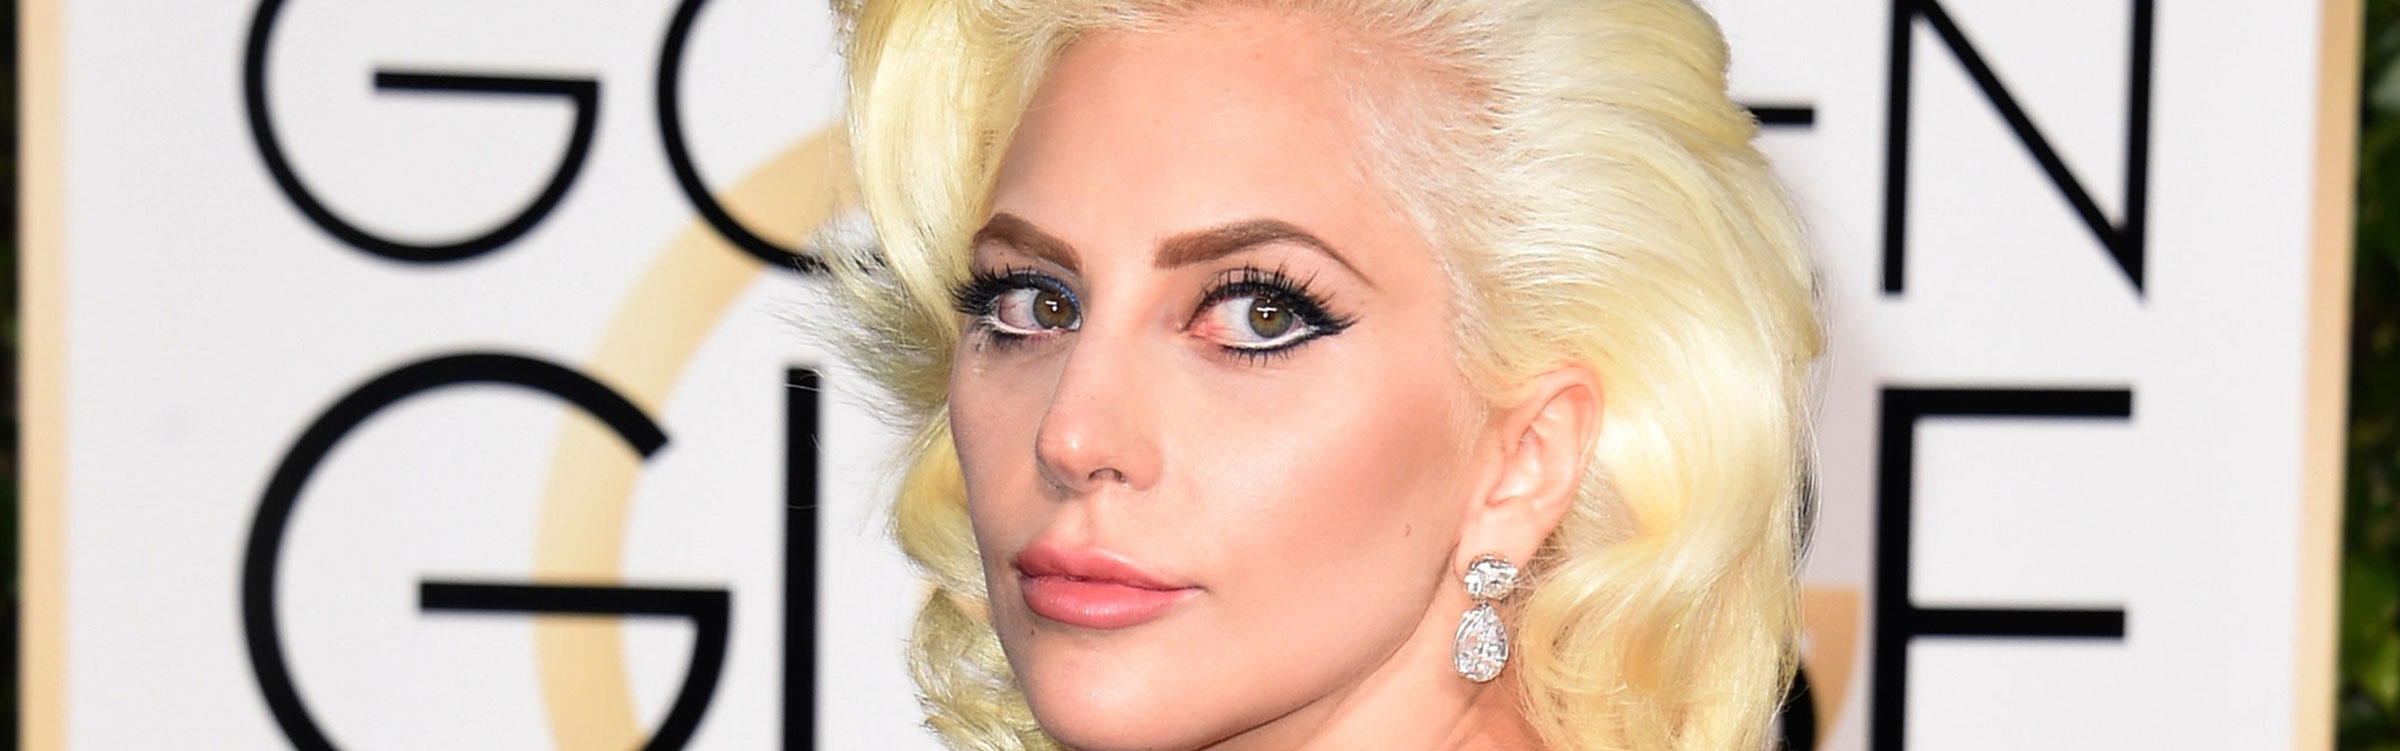 Lady gaga taylor kinney golden globes 2016 pictures